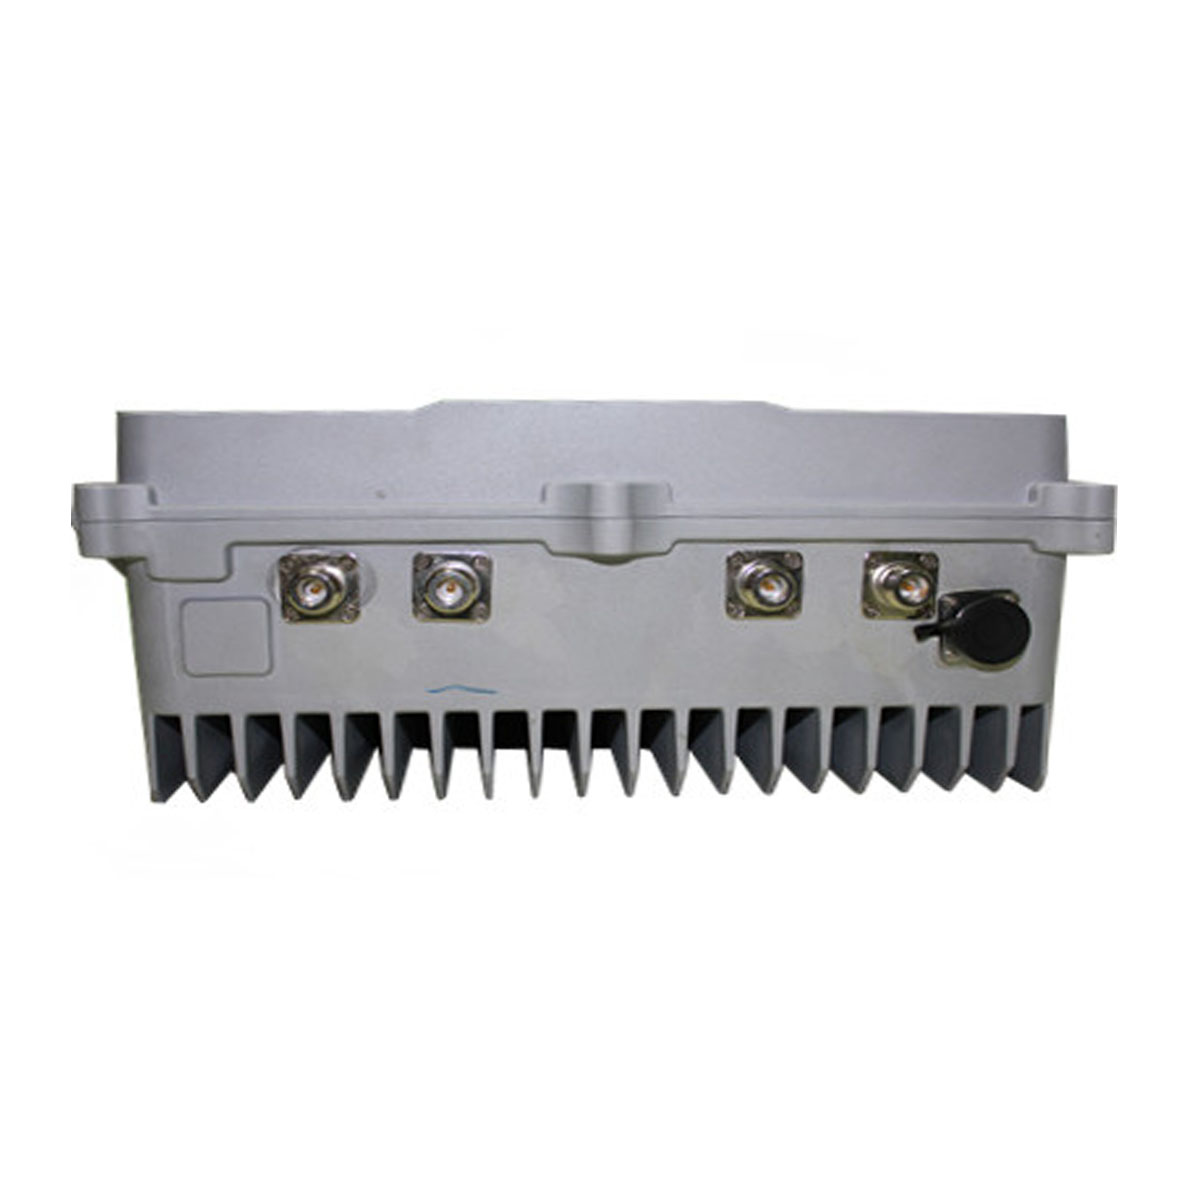 Adjustable gps signal Jammer - China 4G Portable Handheld 6 Antennas Jammer; GSM CDMA 2g 3G 4G WiFi Signal Jammer - China 4G Jammer, Jammer